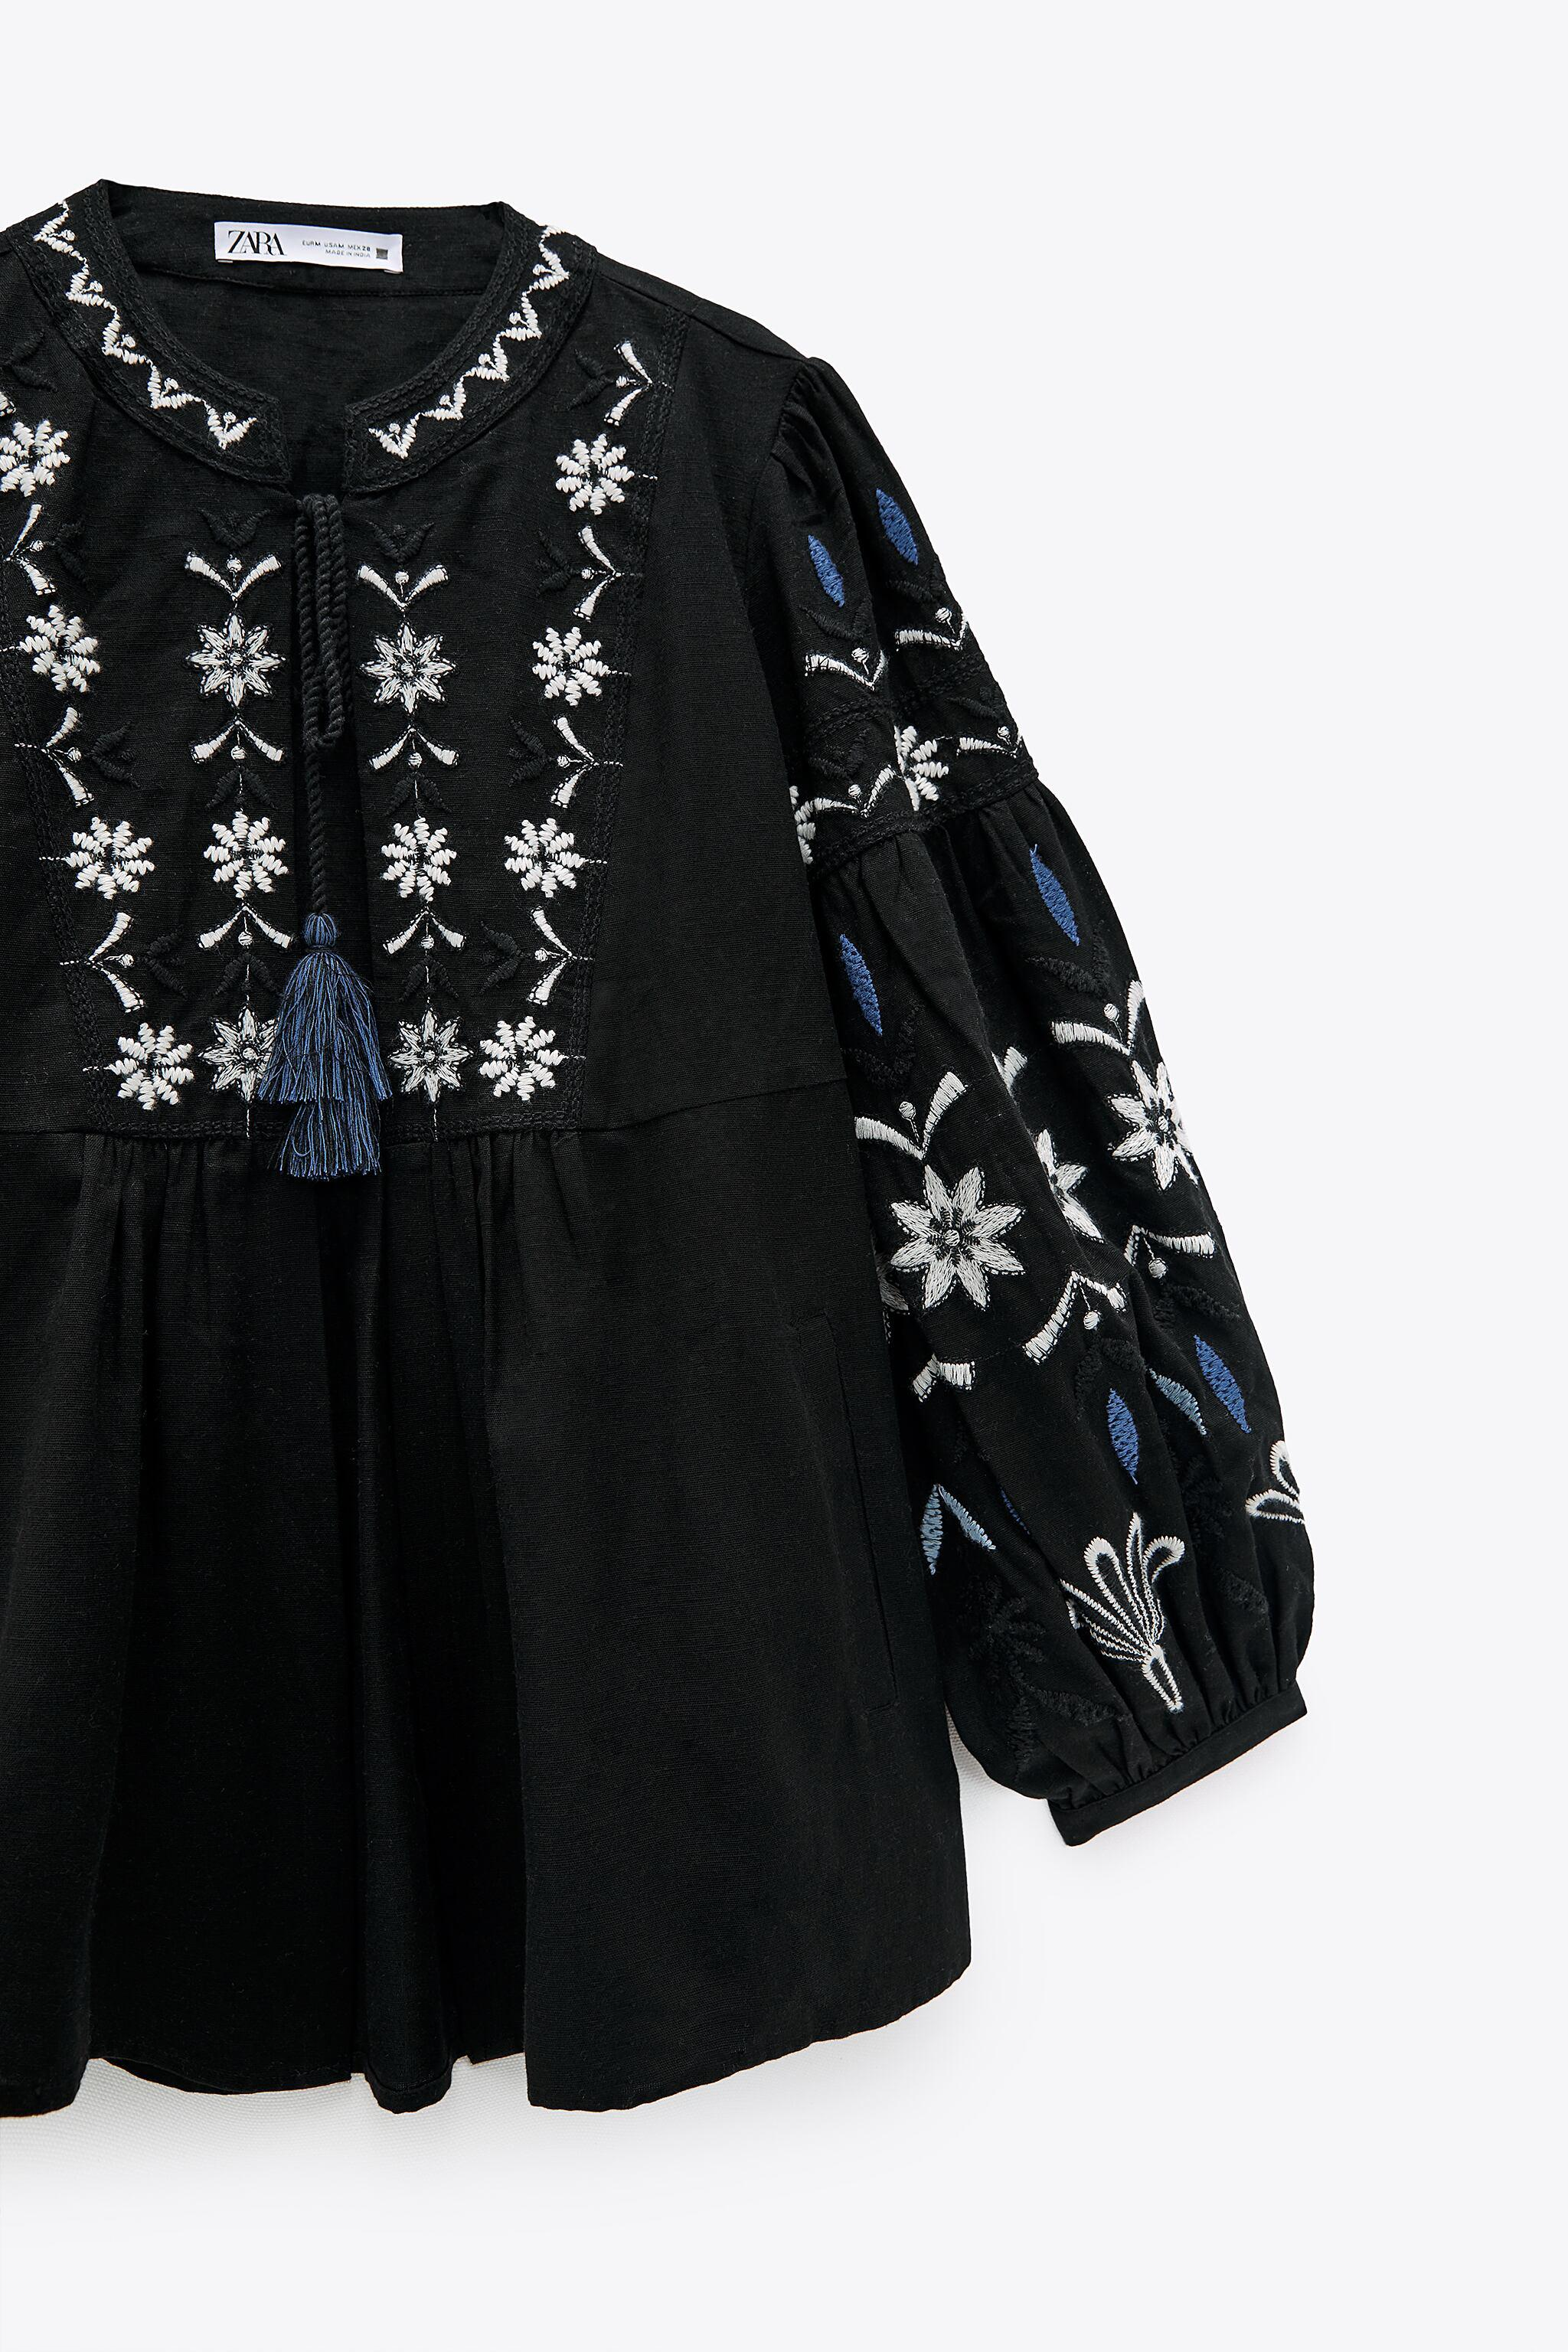 EMBROIDERED COTTON OVERSHIRT 7